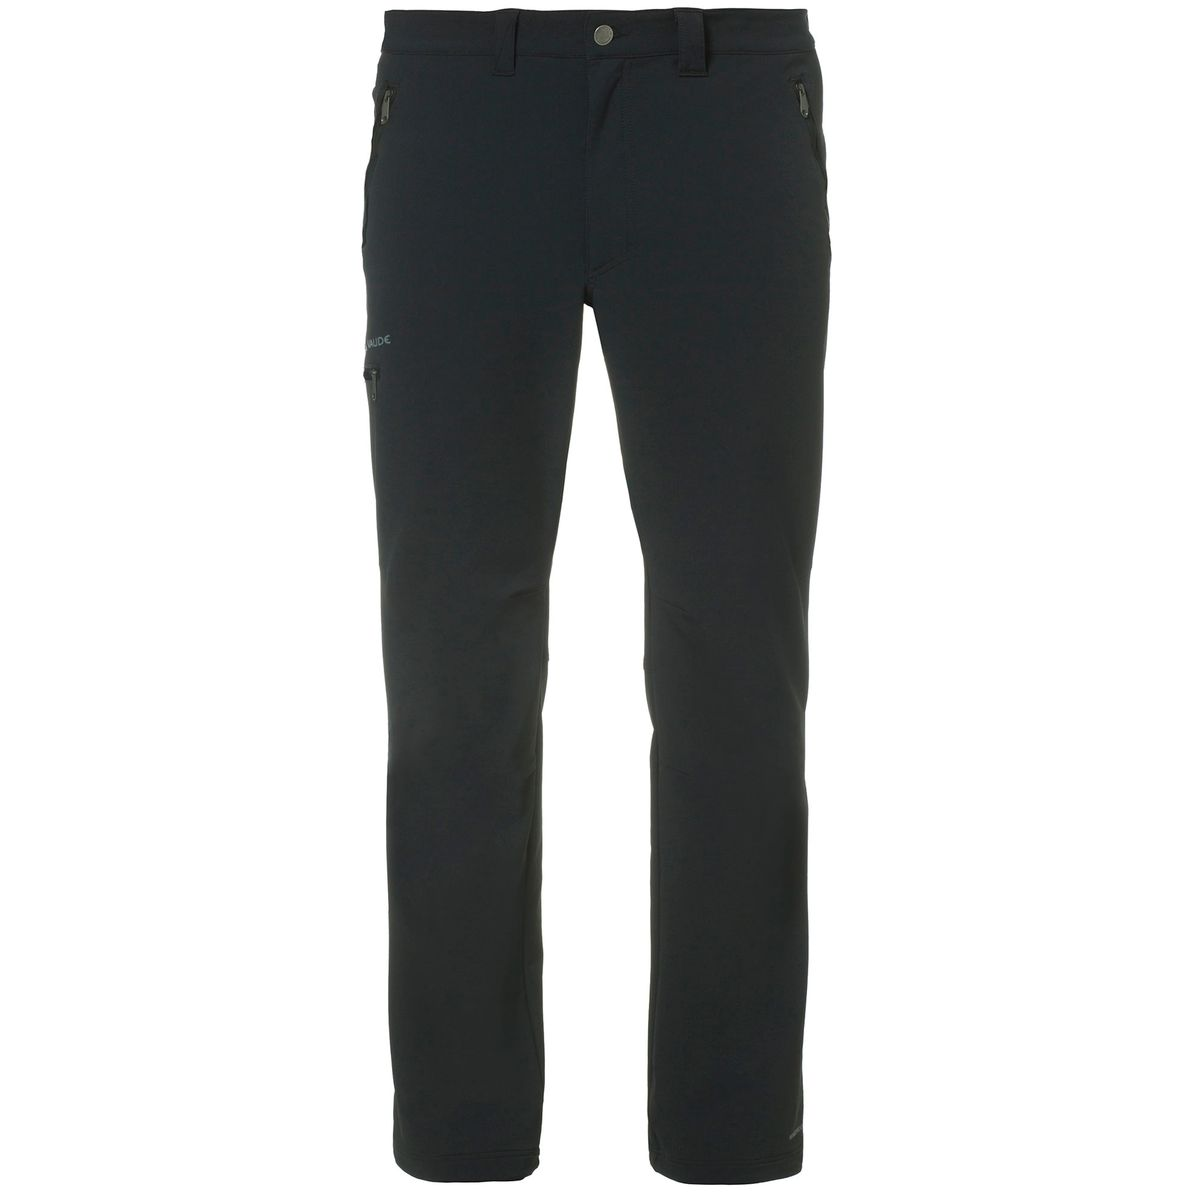 STRATHCONA softshell trousers